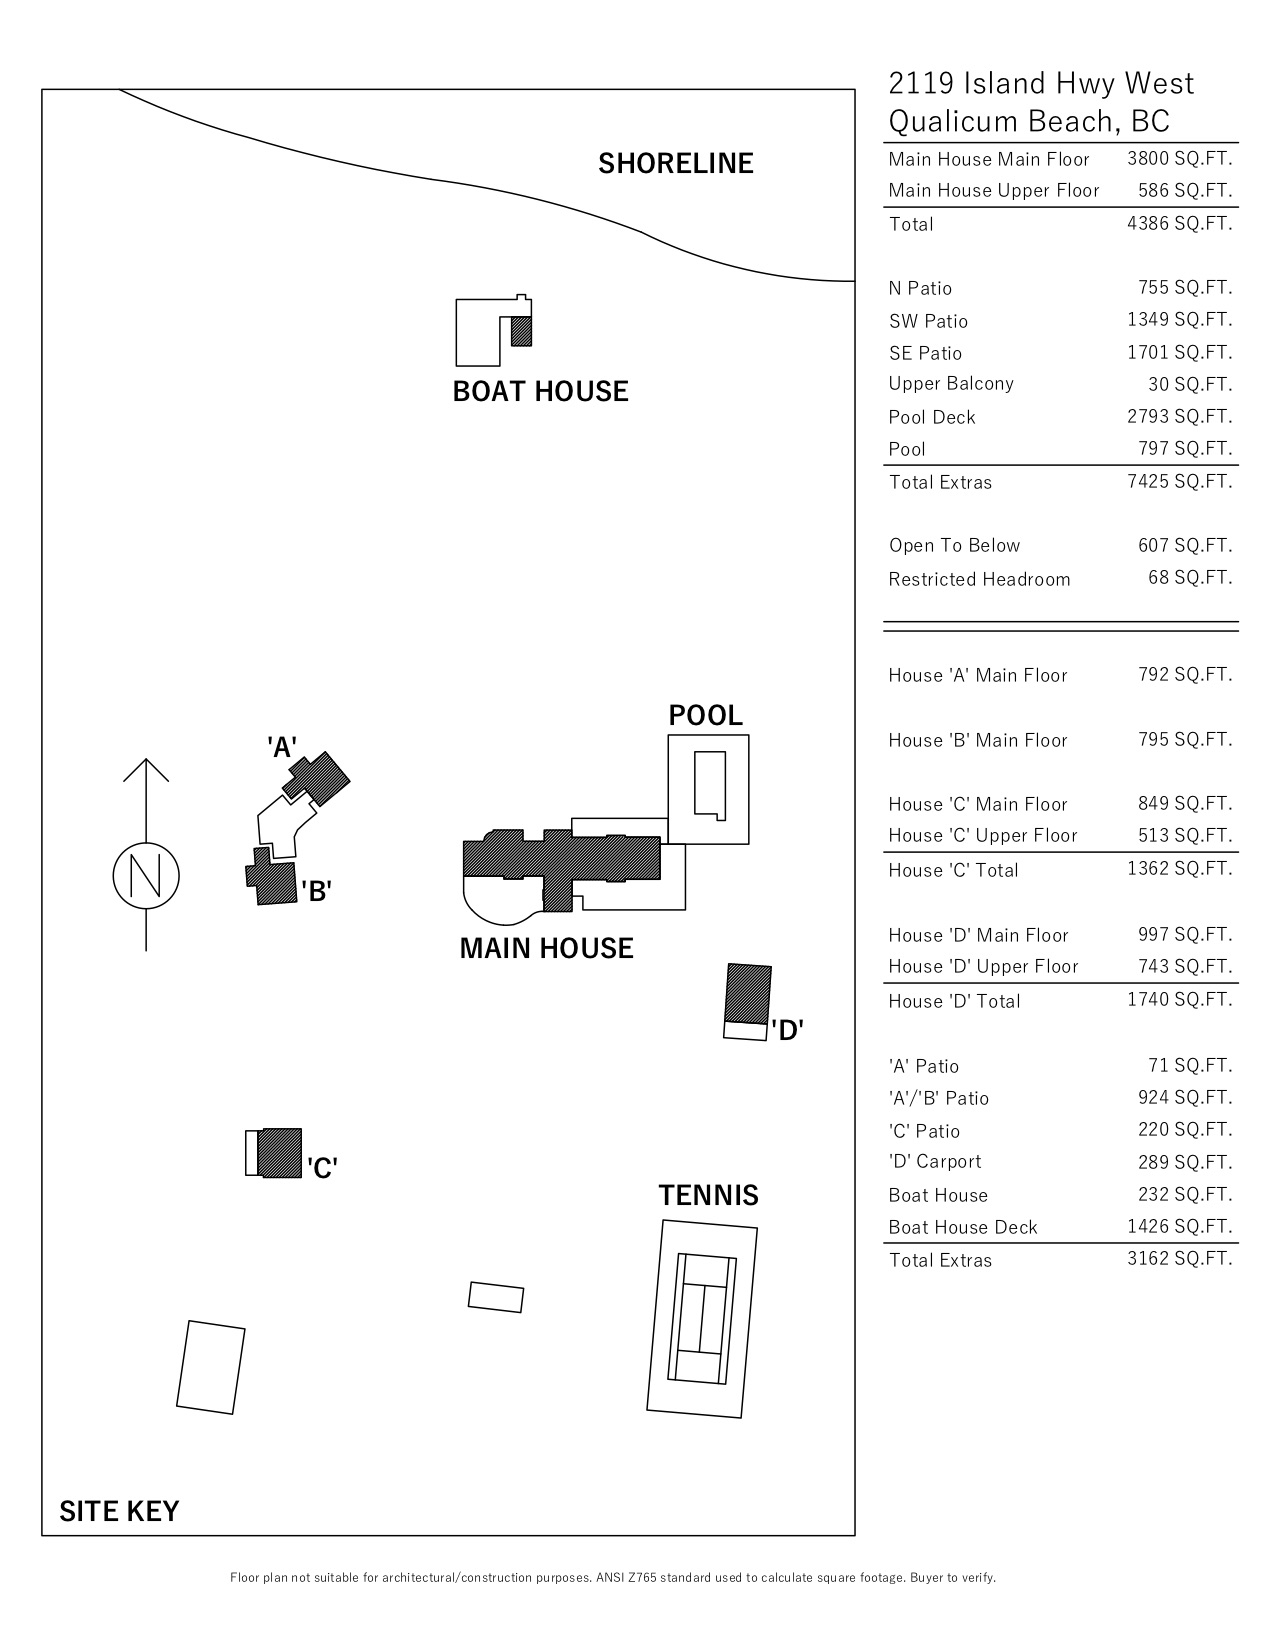 2119 Island Hwy West Qualicum Beach Final-Site Key.jpg